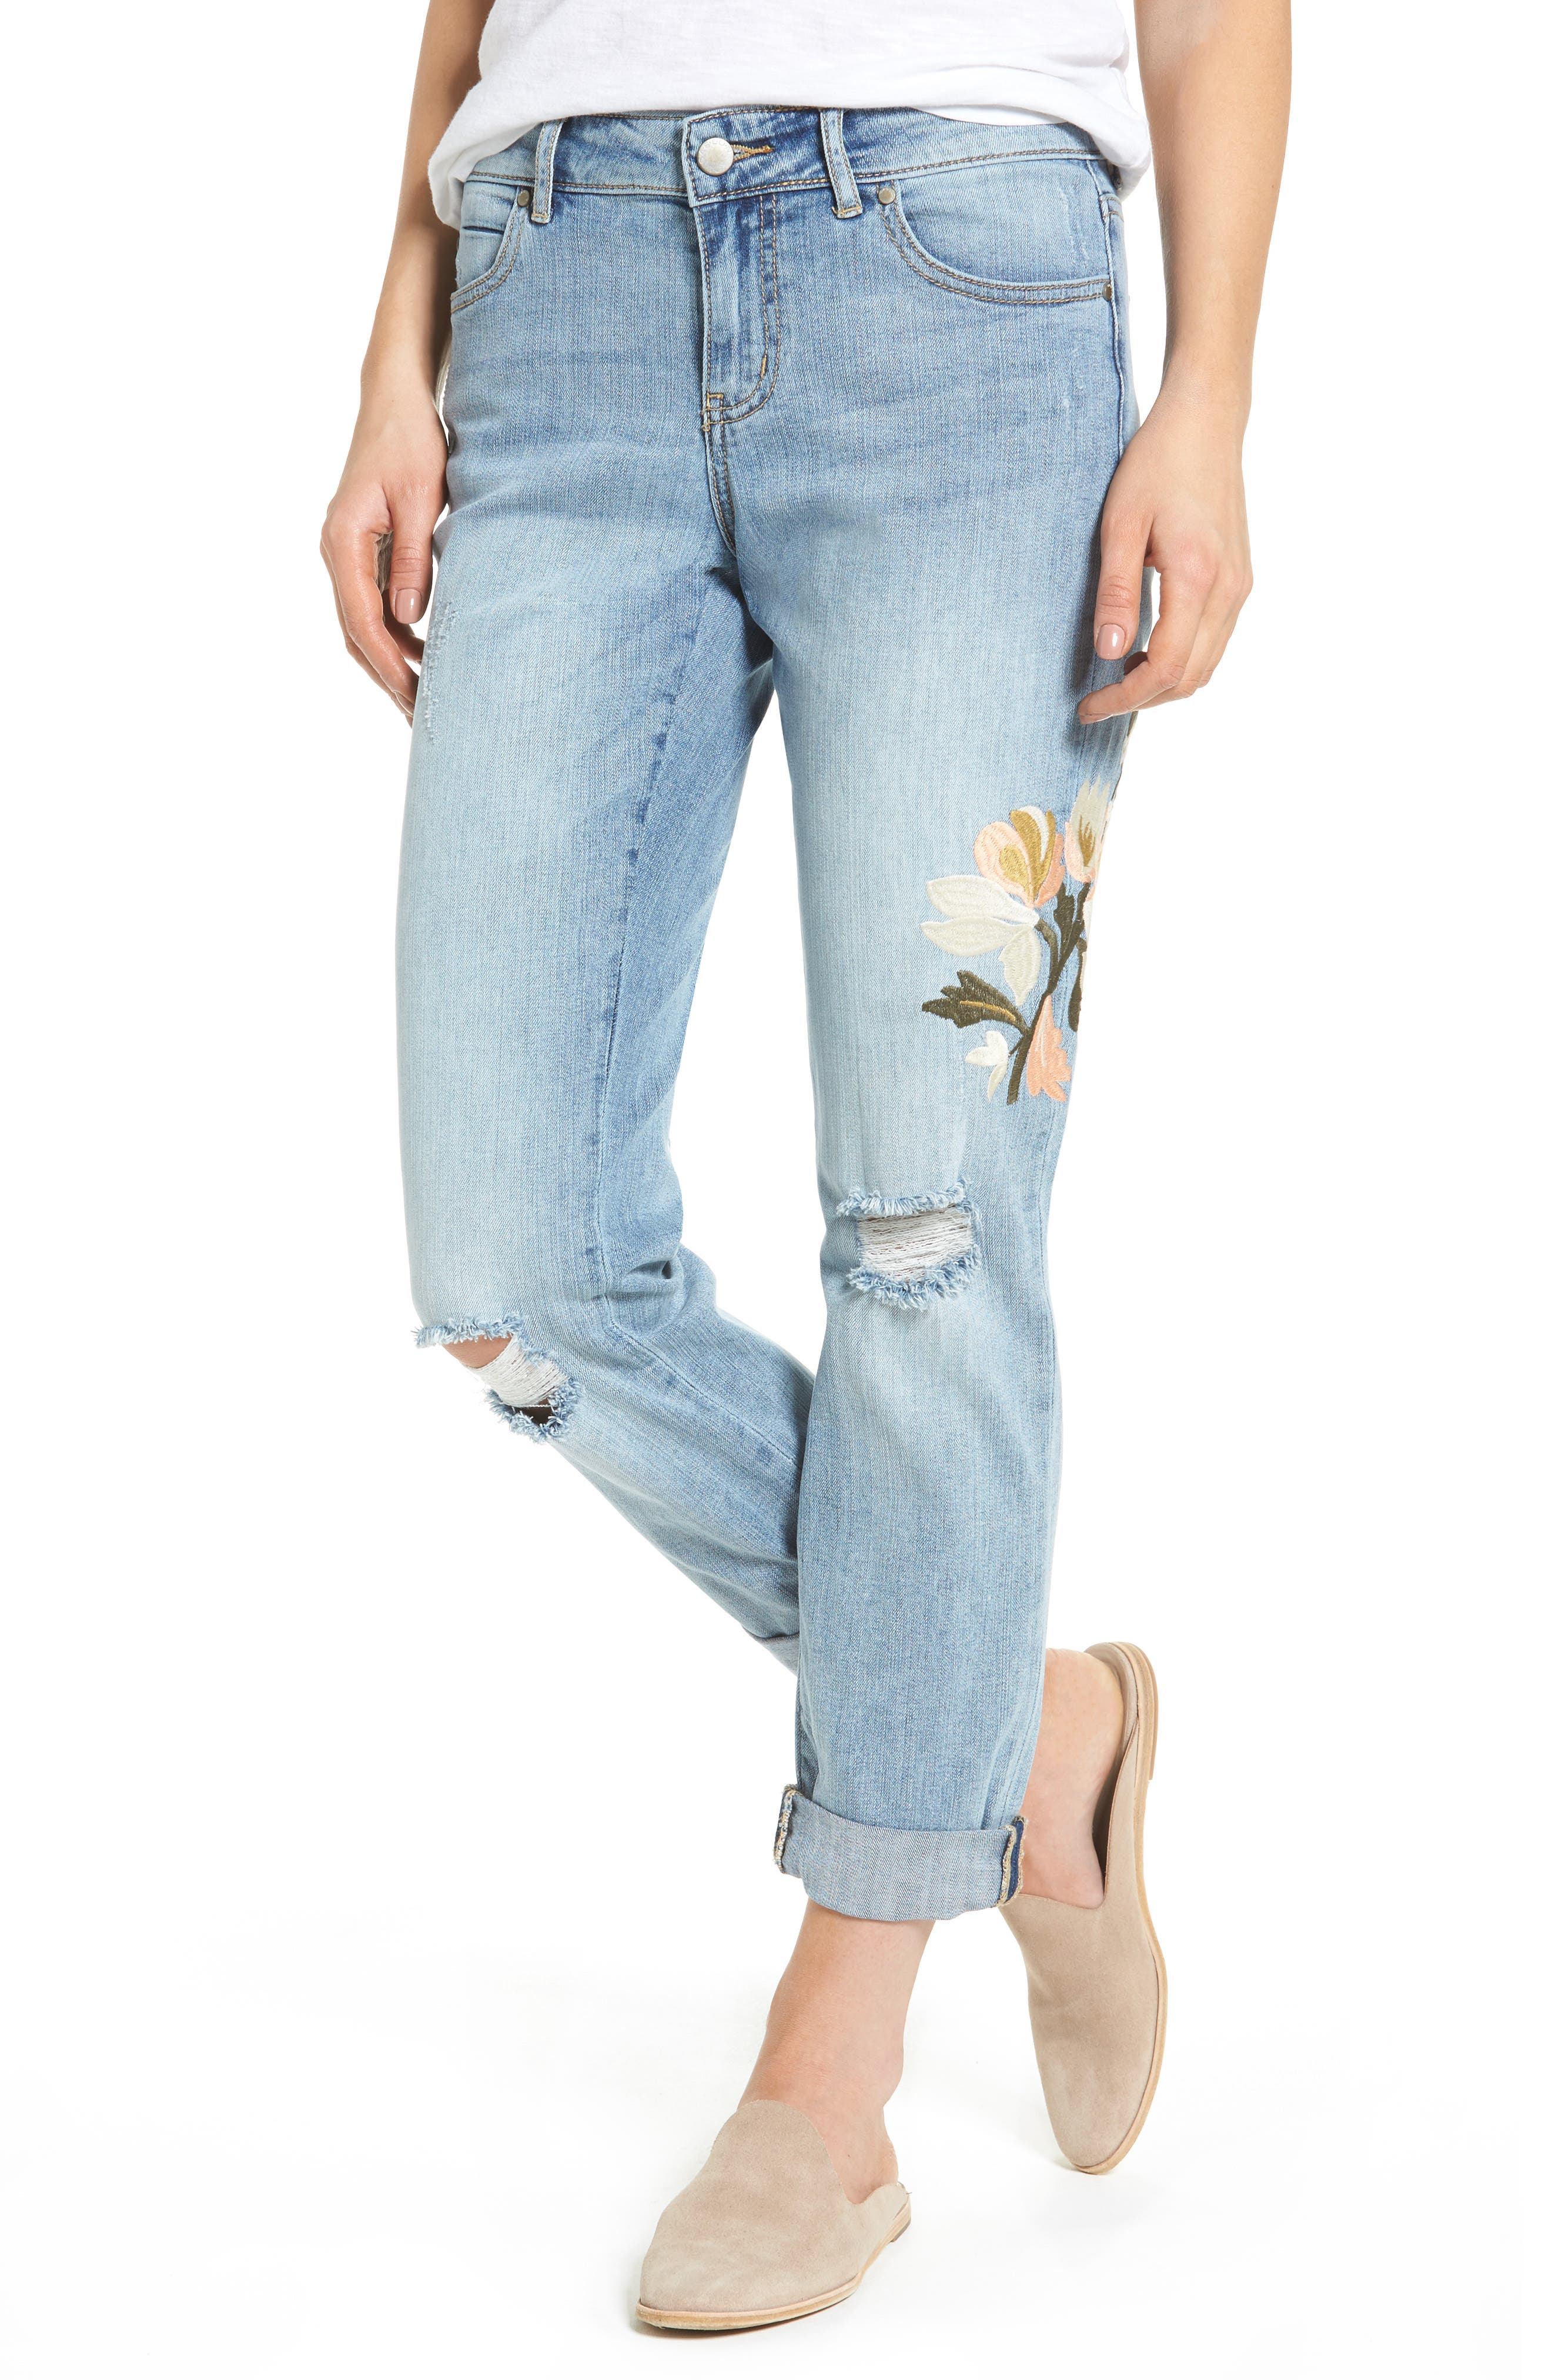 Alternate Image 1 Selected - Caslon® Ripped & Floral Embroidered Straight Leg Jeans (Regular & Petite)